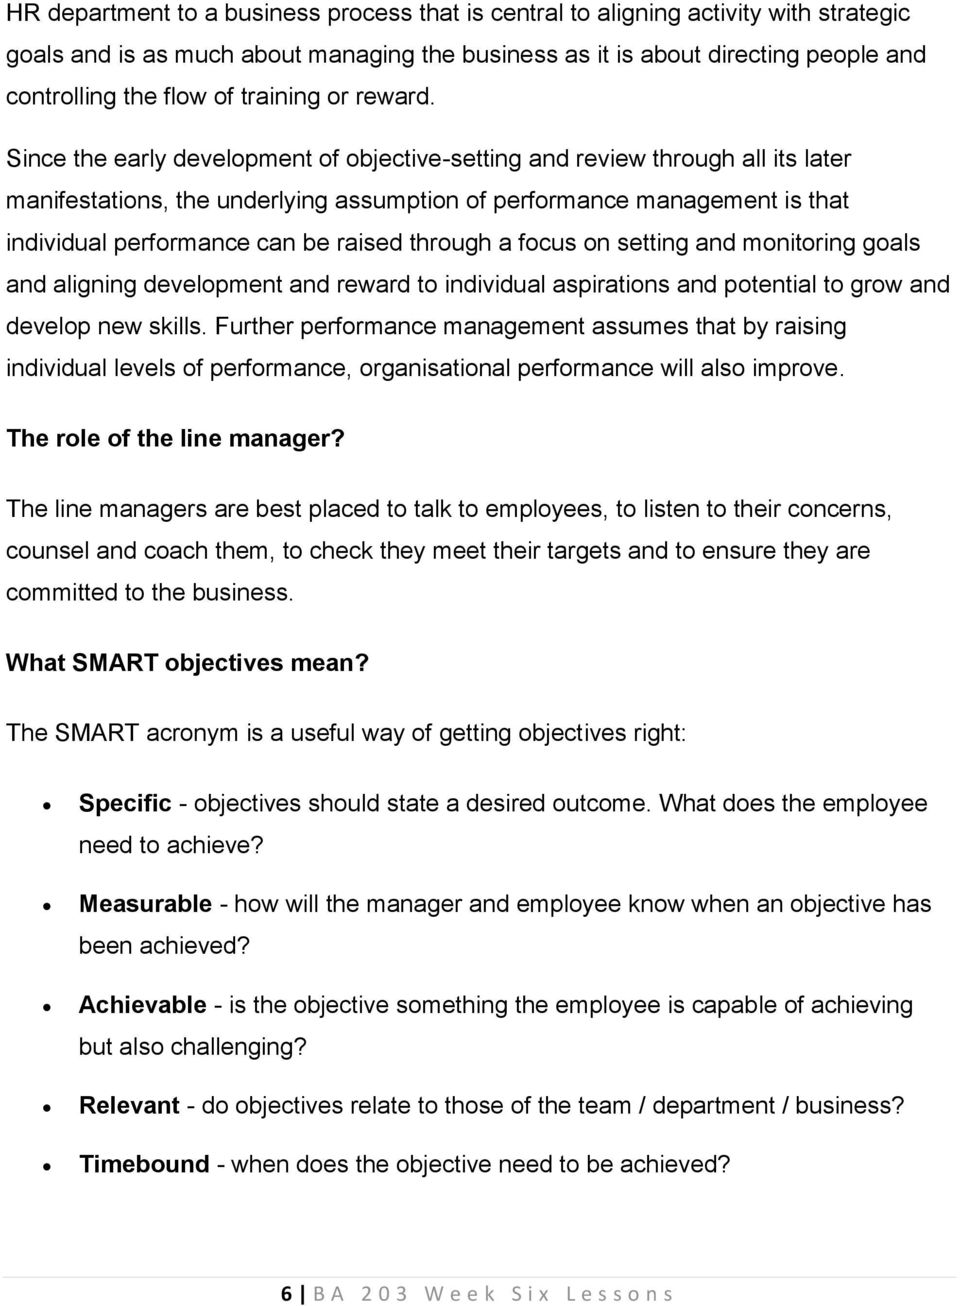 Since the early development of objective-setting and review through all its later manifestations, the underlying assumption of performance management is that individual performance can be raised